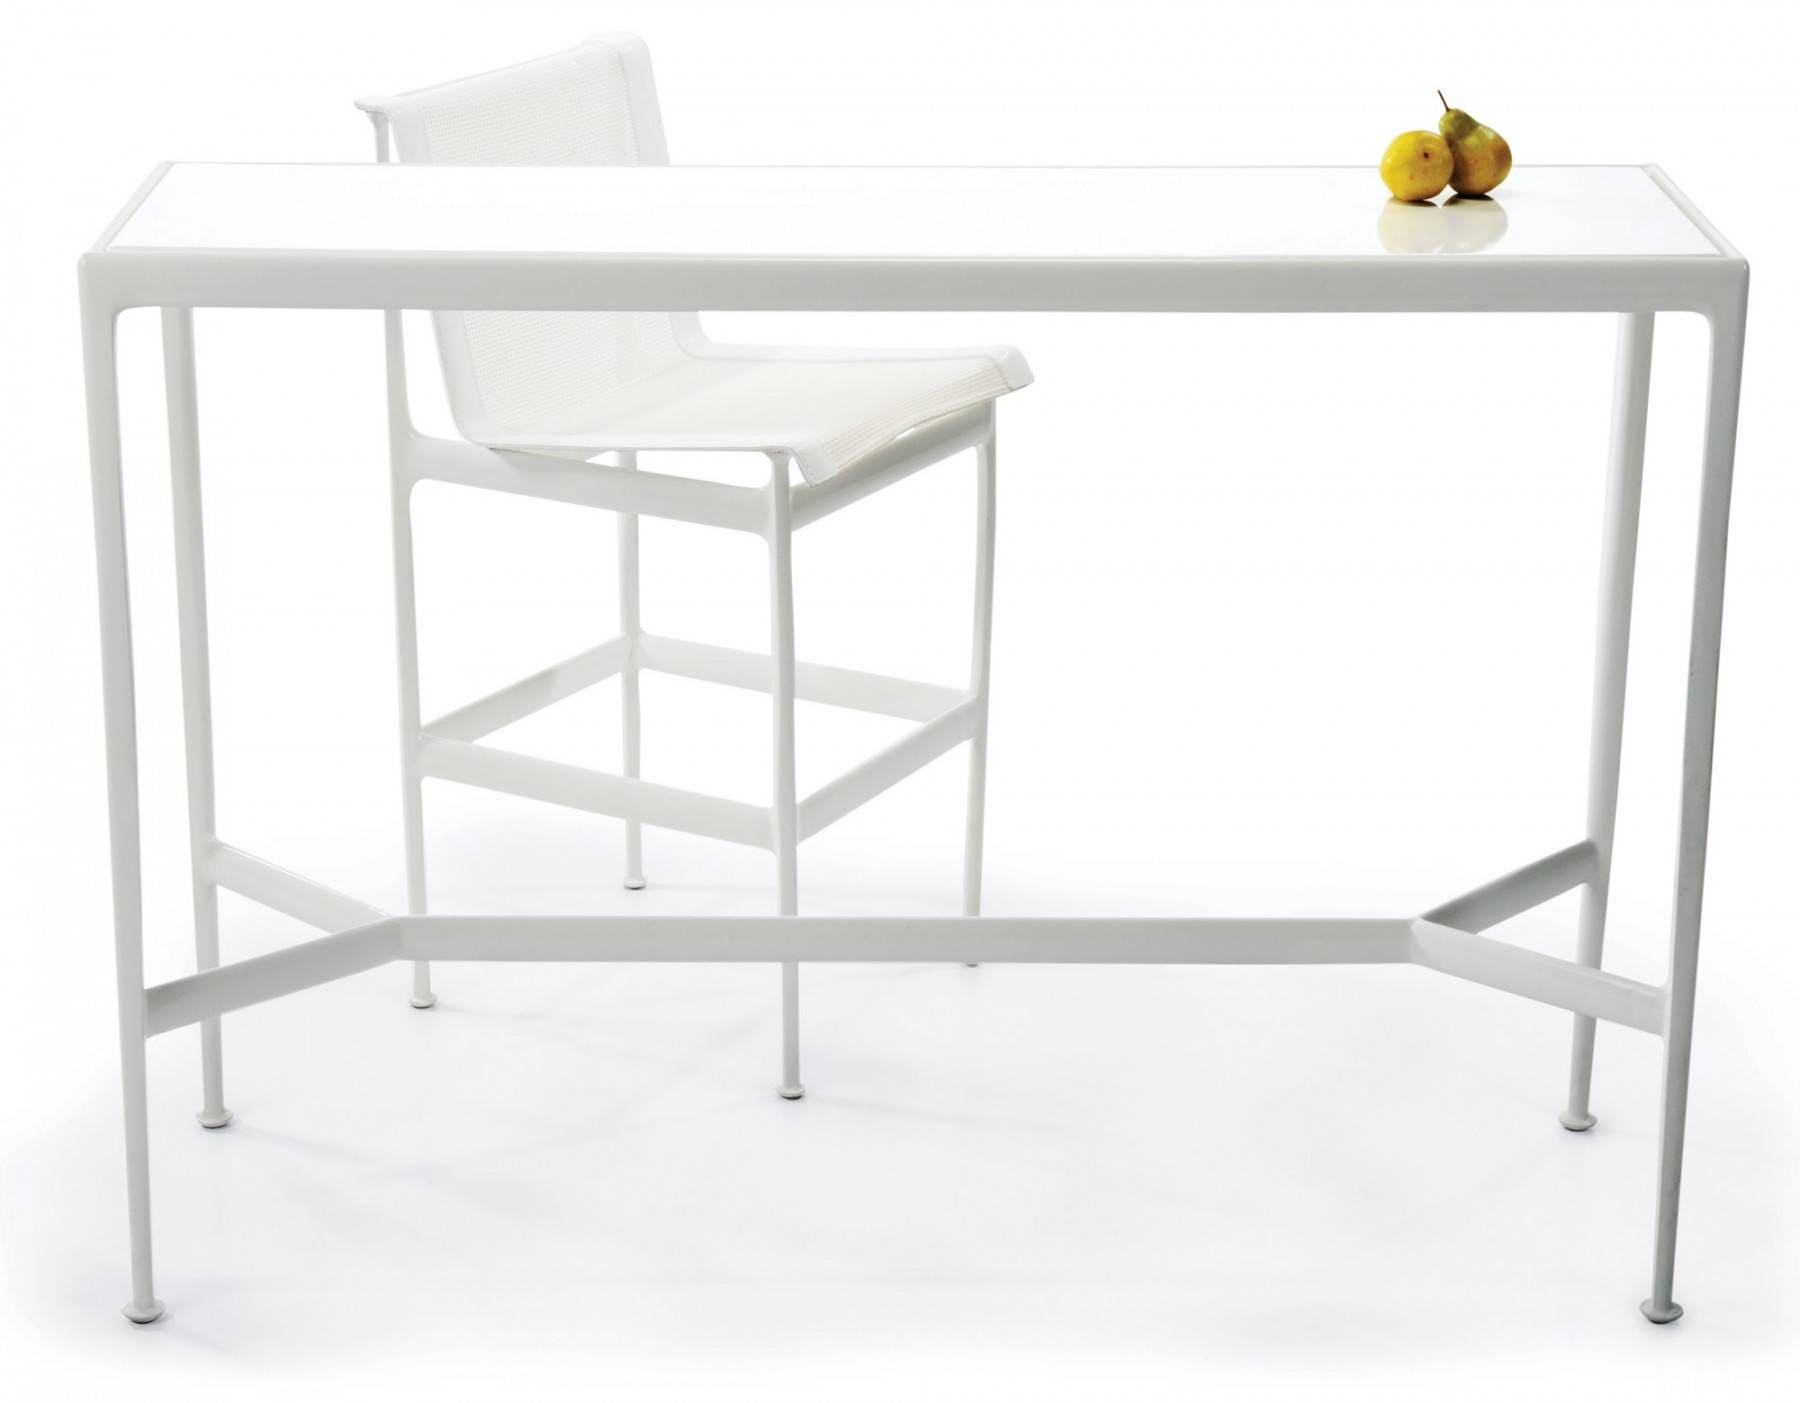 richard schultz  collection bar height table   x   gr  -